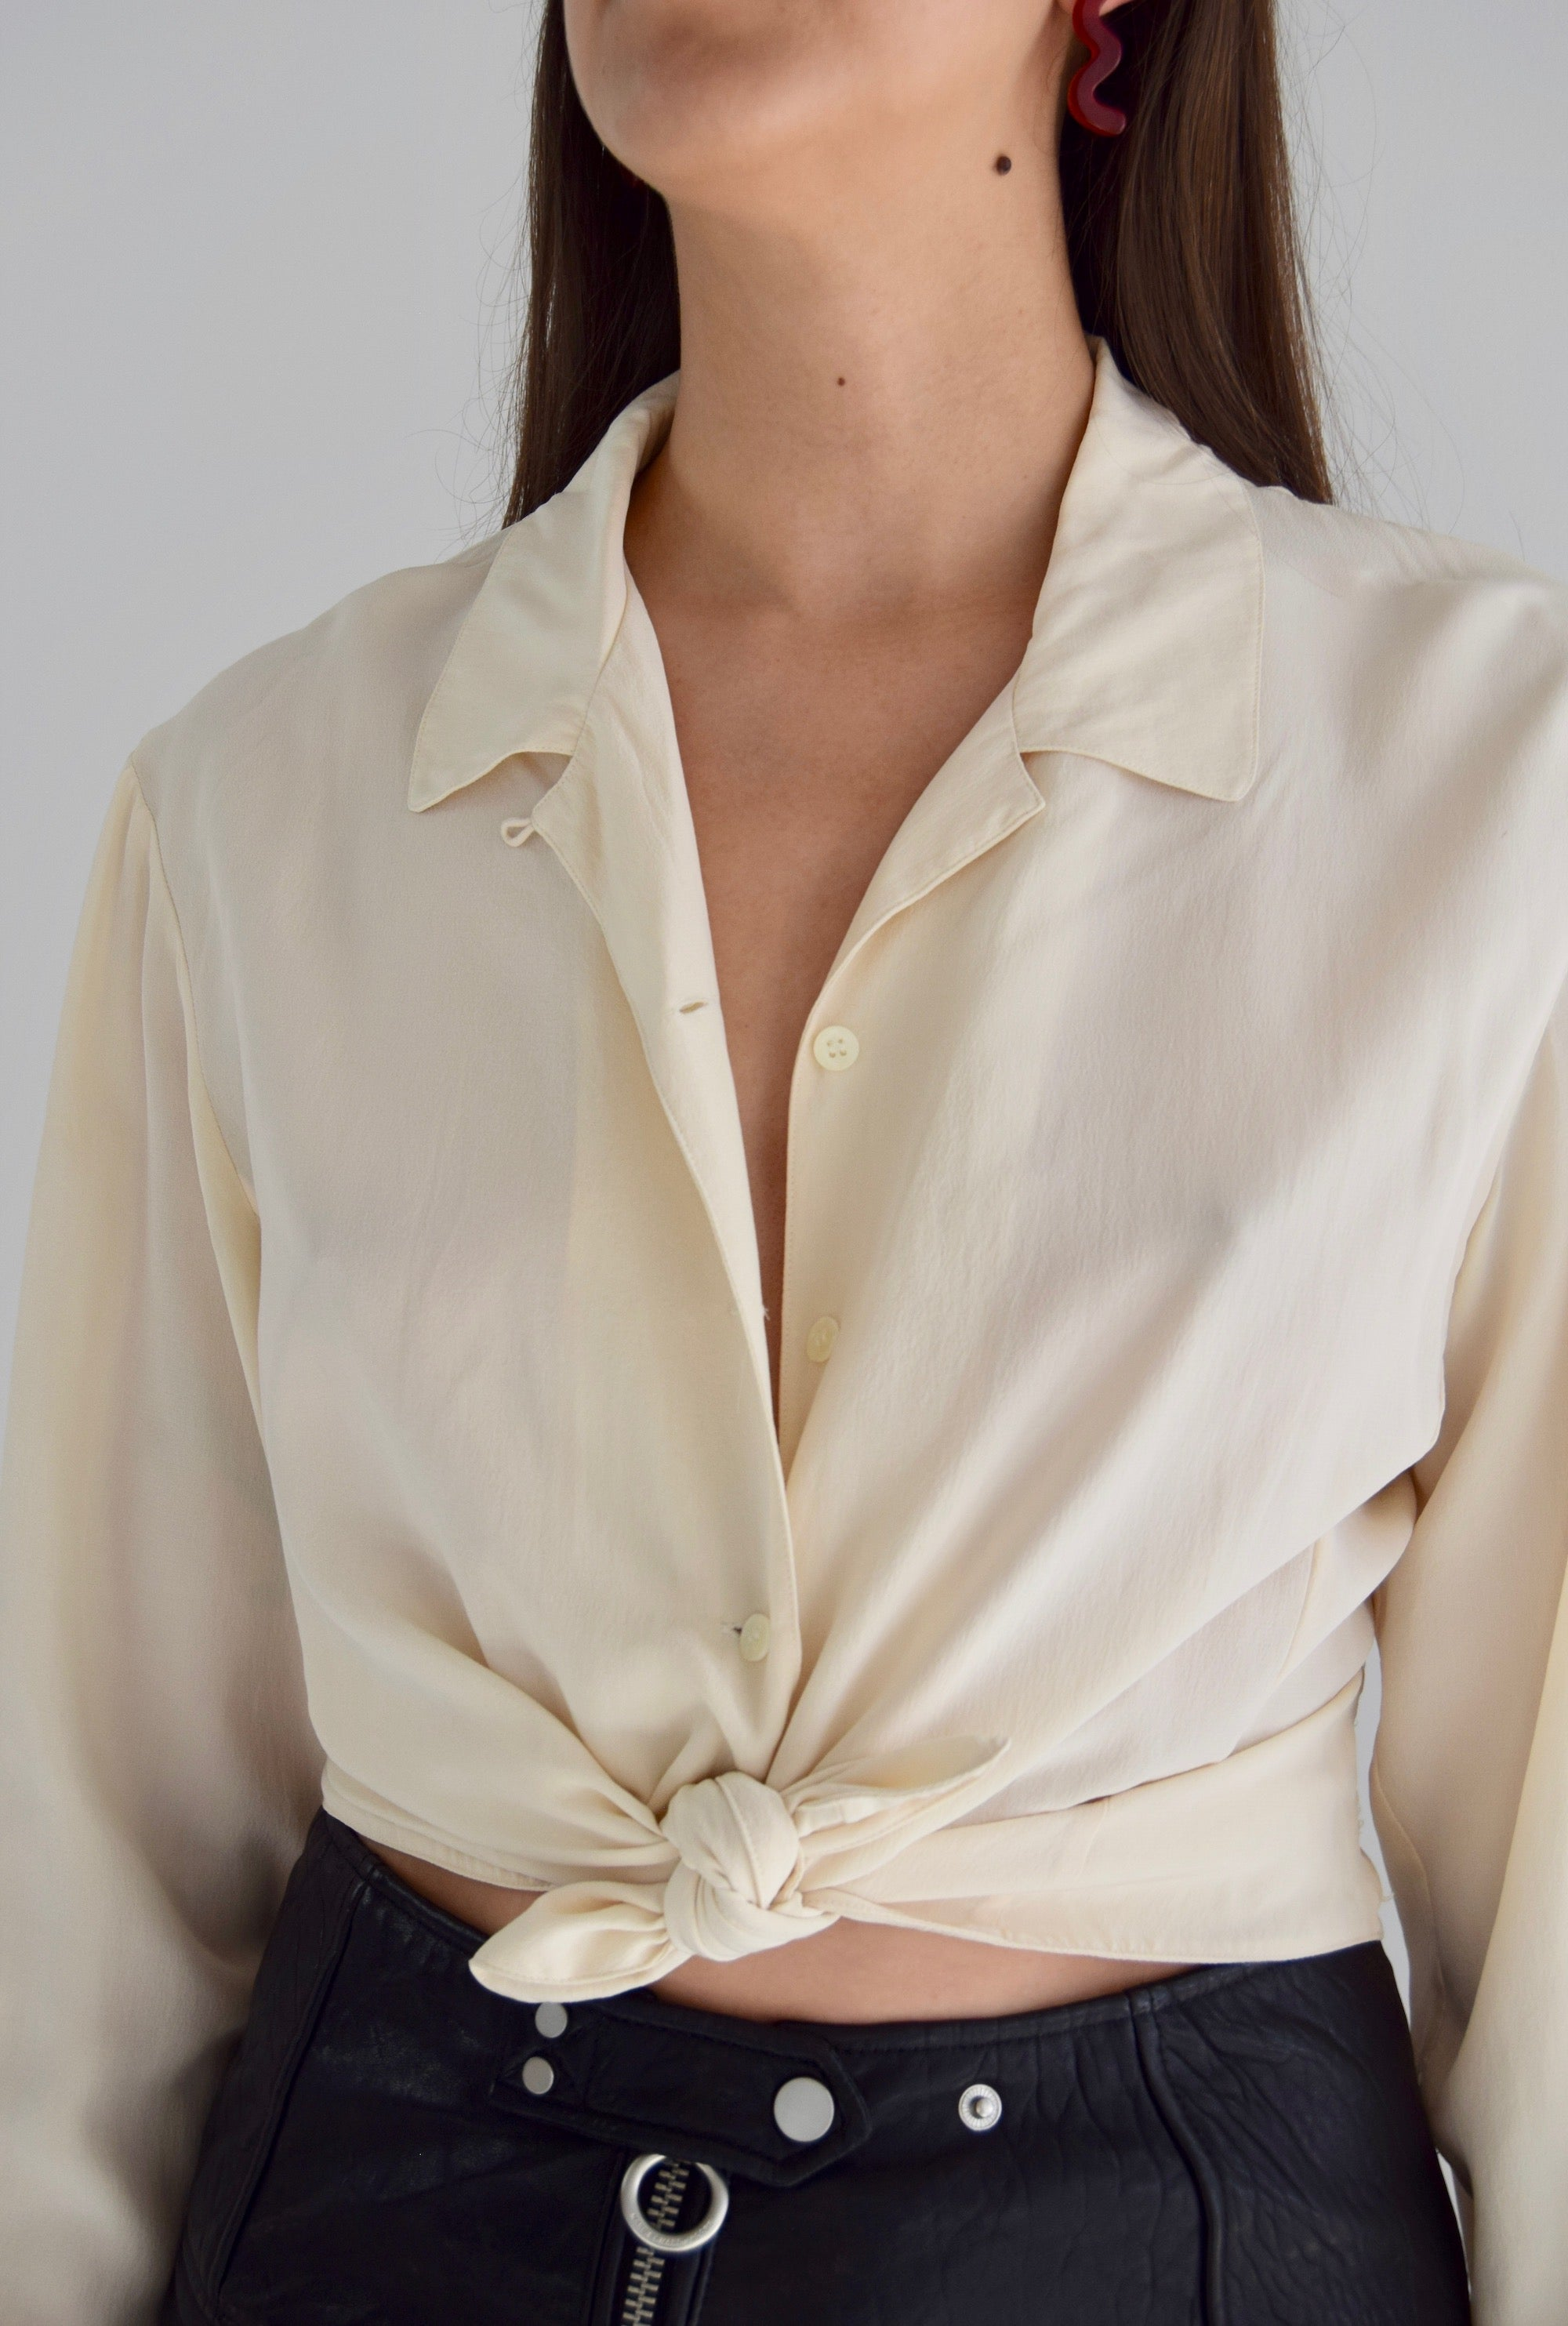 Silk Bone Top FREE SHIPPING TO THE U.S.